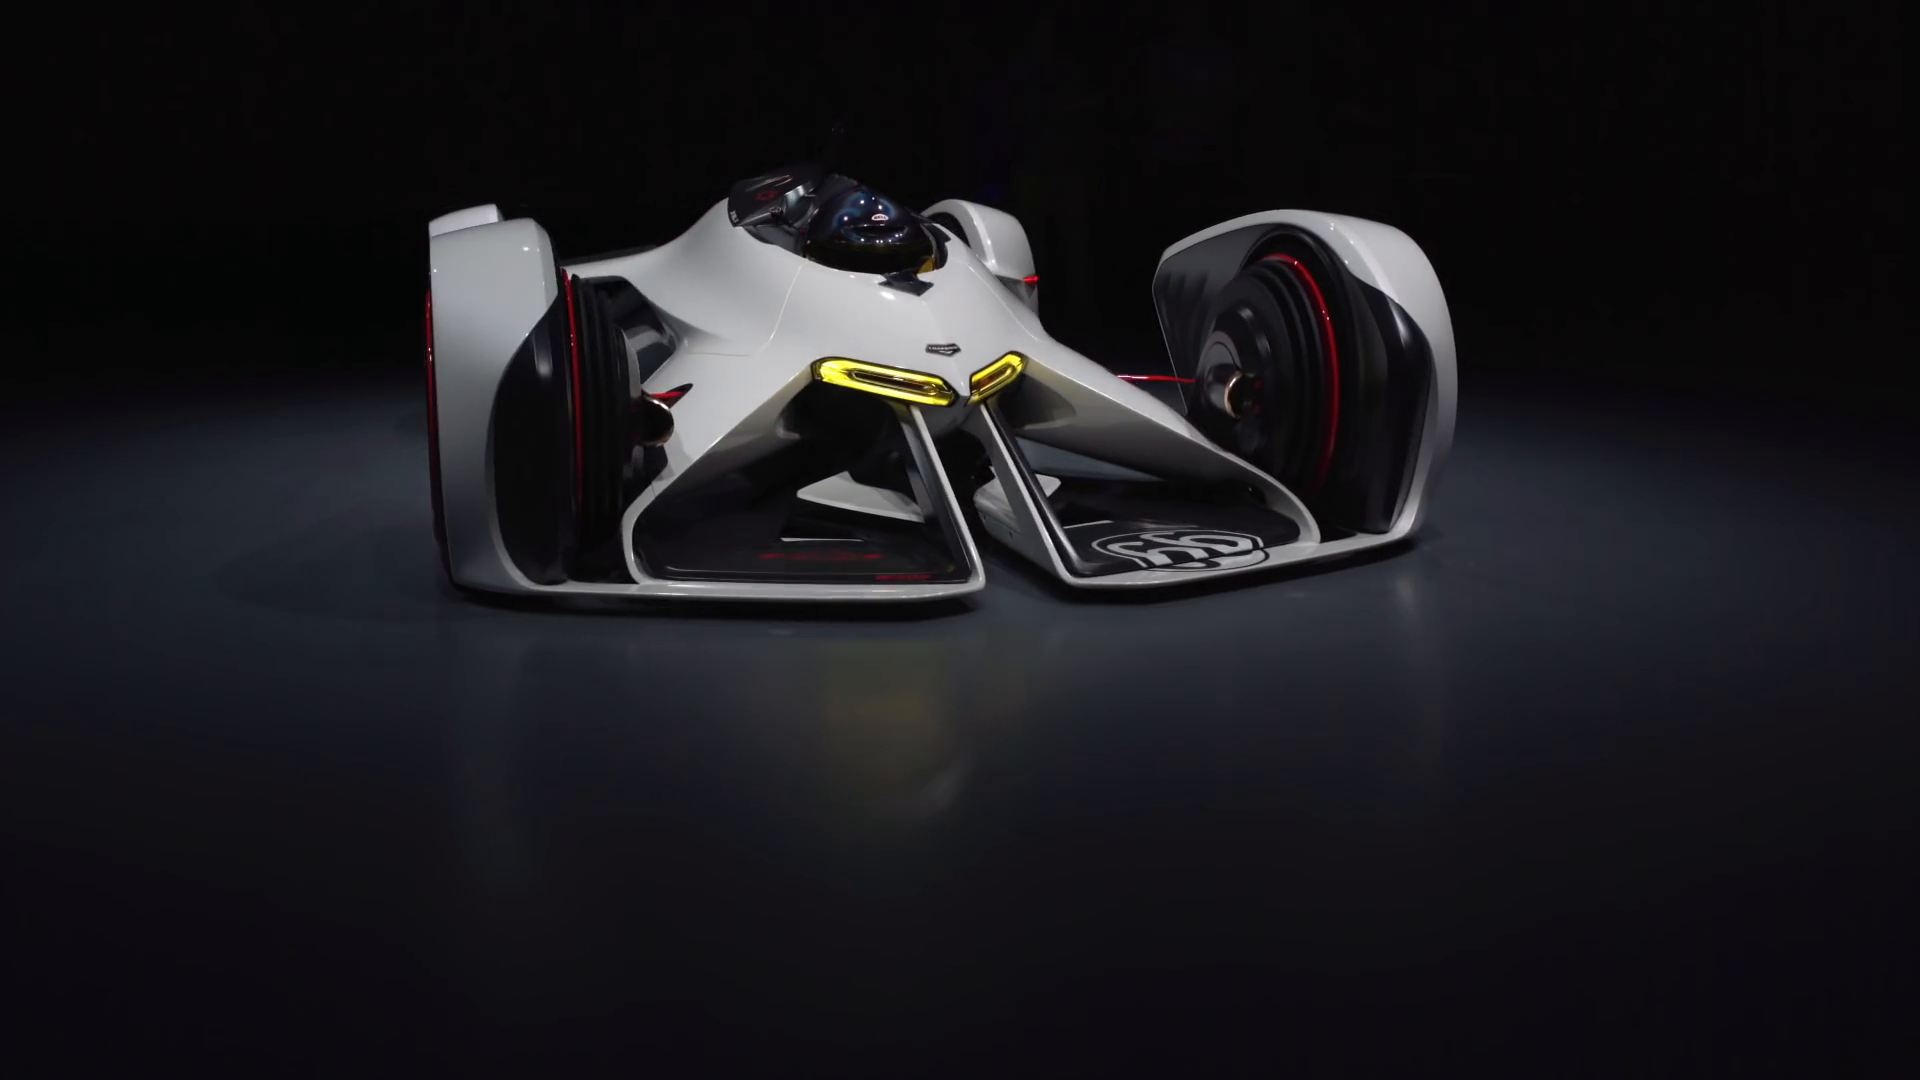 The Chevrolet Chaparral 2X is a car designed with Chevrolet in conjunction with Polyphony Digital.